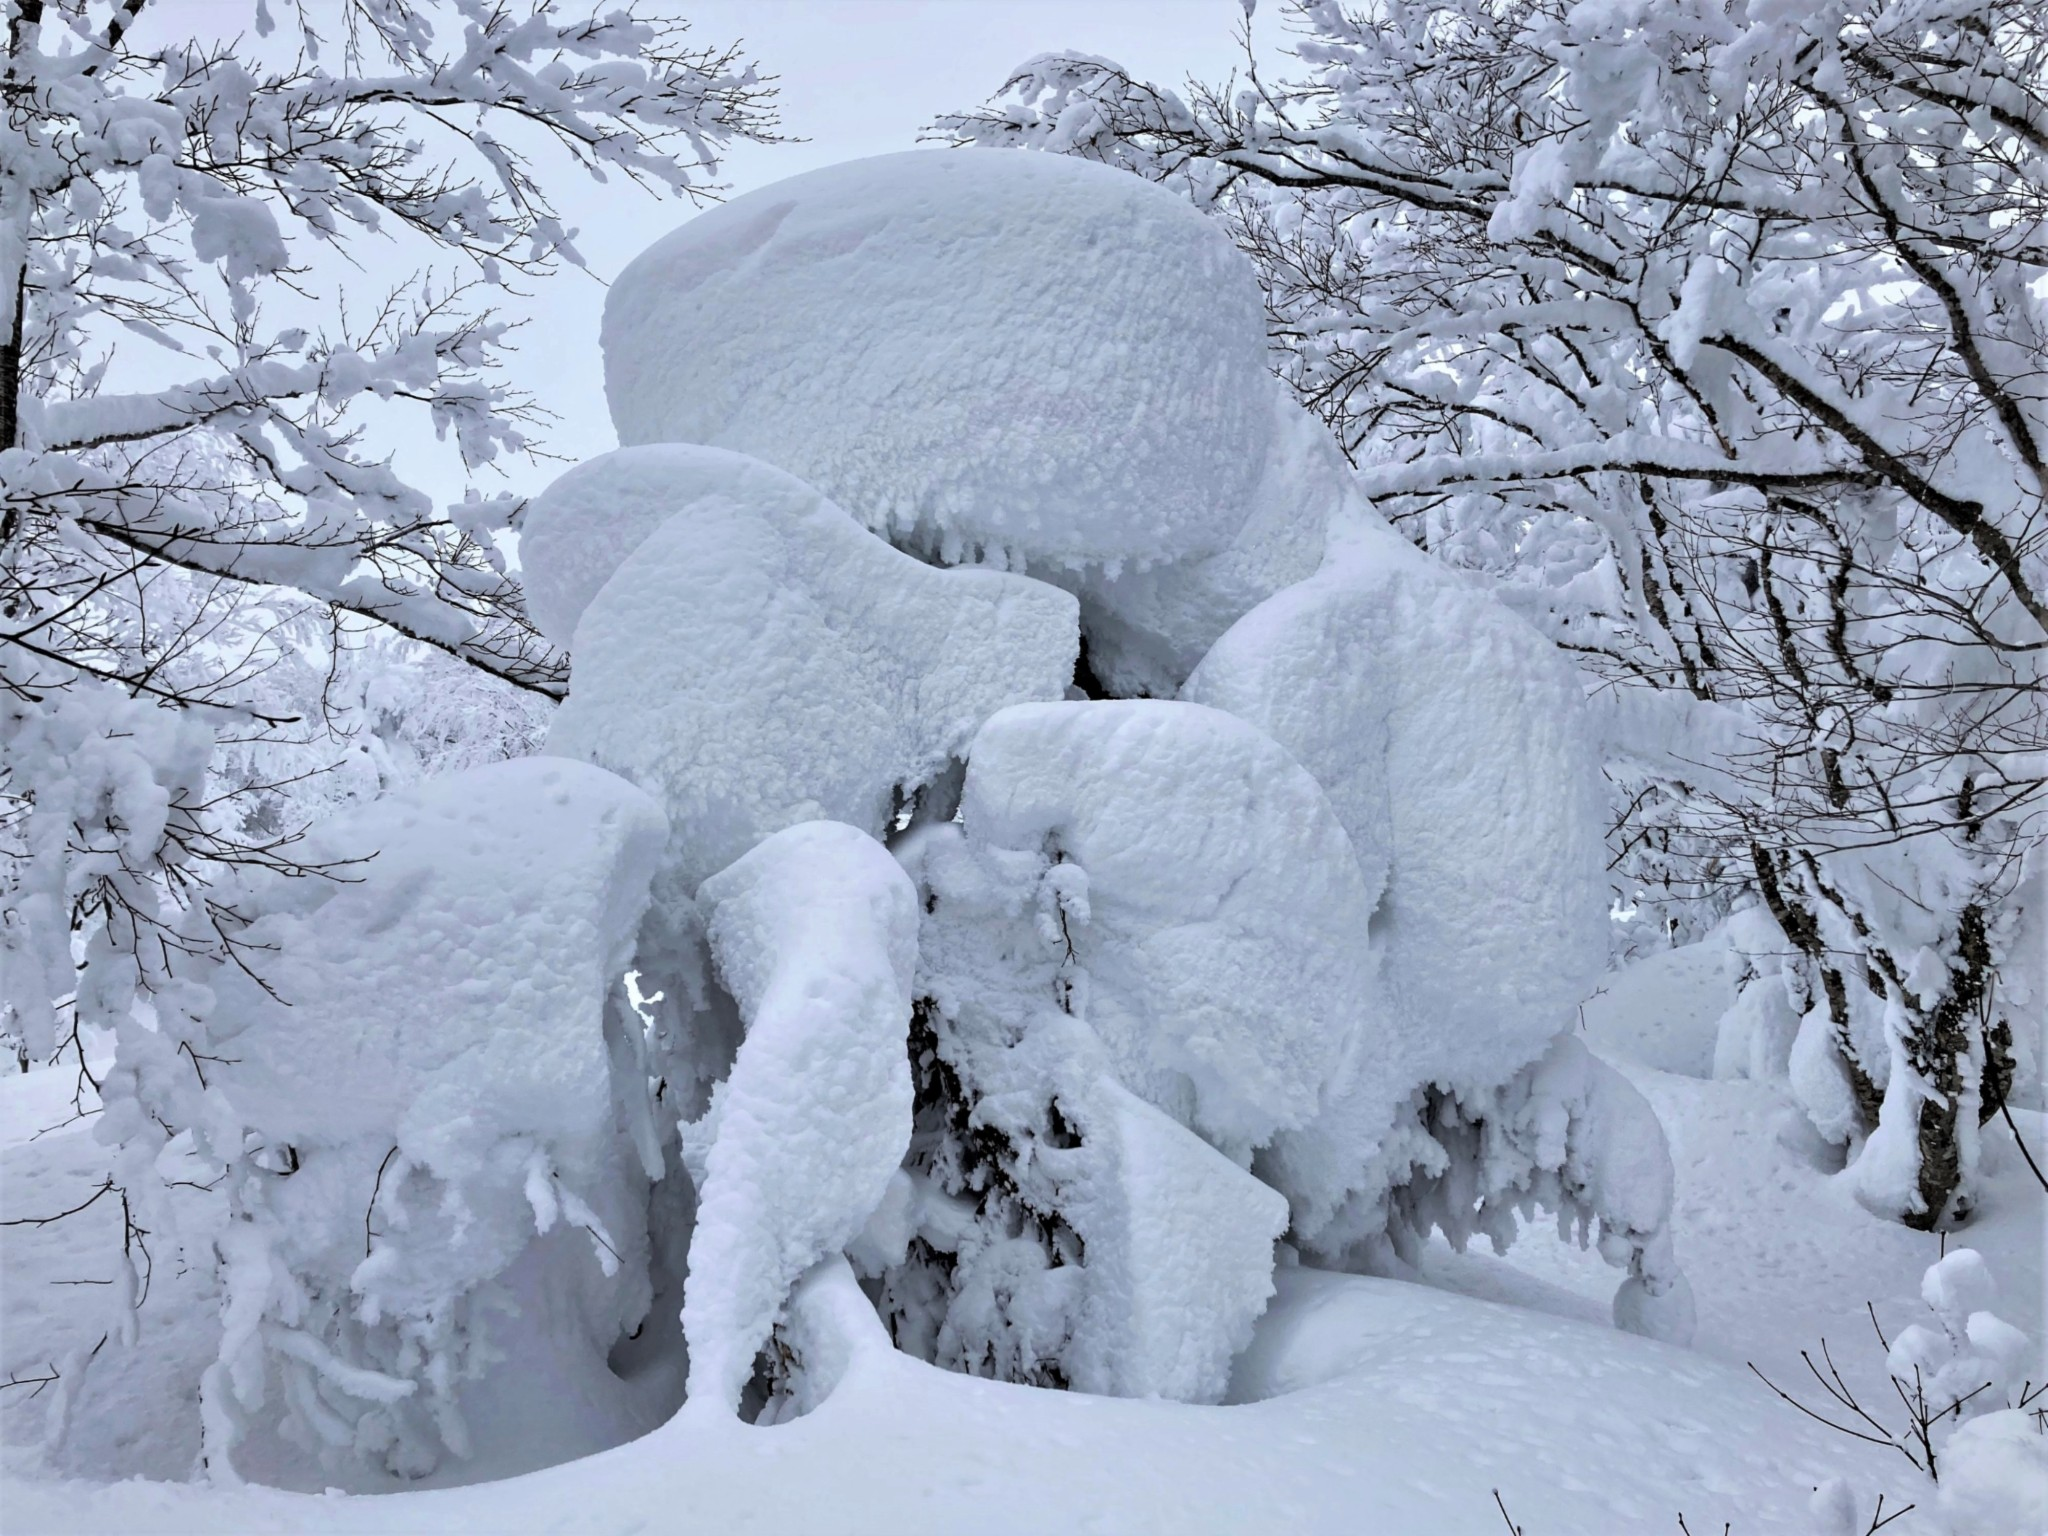 A crab-shaped snow monster standing between icy trees on Mount Zao in Yamagata, Japan.